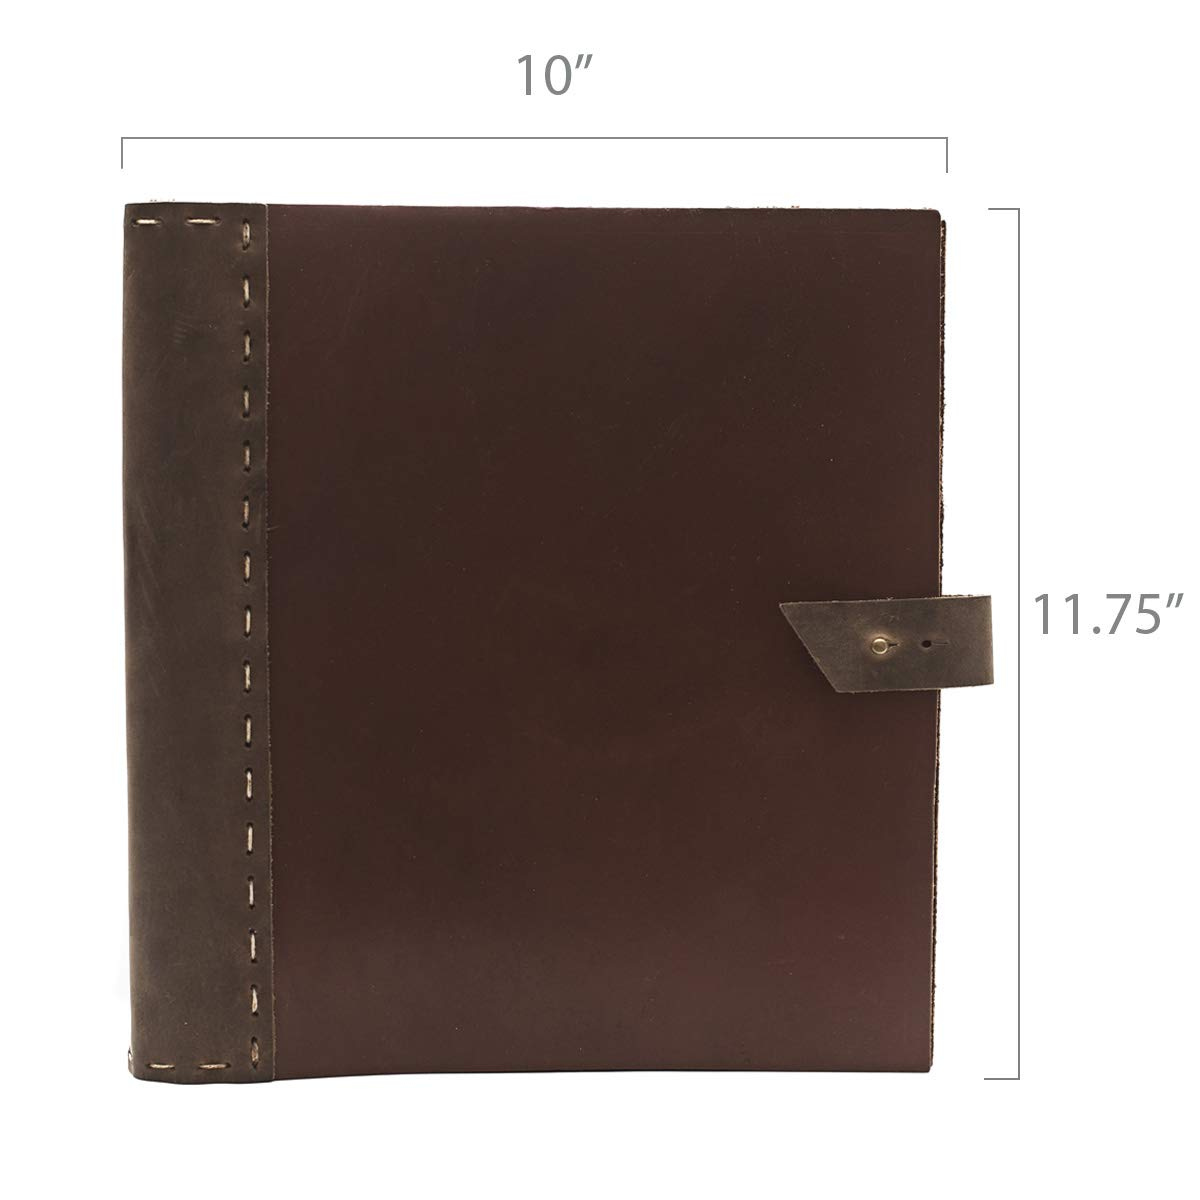 Rustic Leather Binder Handmade by Rustico in The USA, Handsewn,Thick, Rich Top-Grain Leather, 3 Ring Spine, 1.5'' Rings, Protect and Store Important documents (Thick Cinnamon & Dark Brown) by Rustico